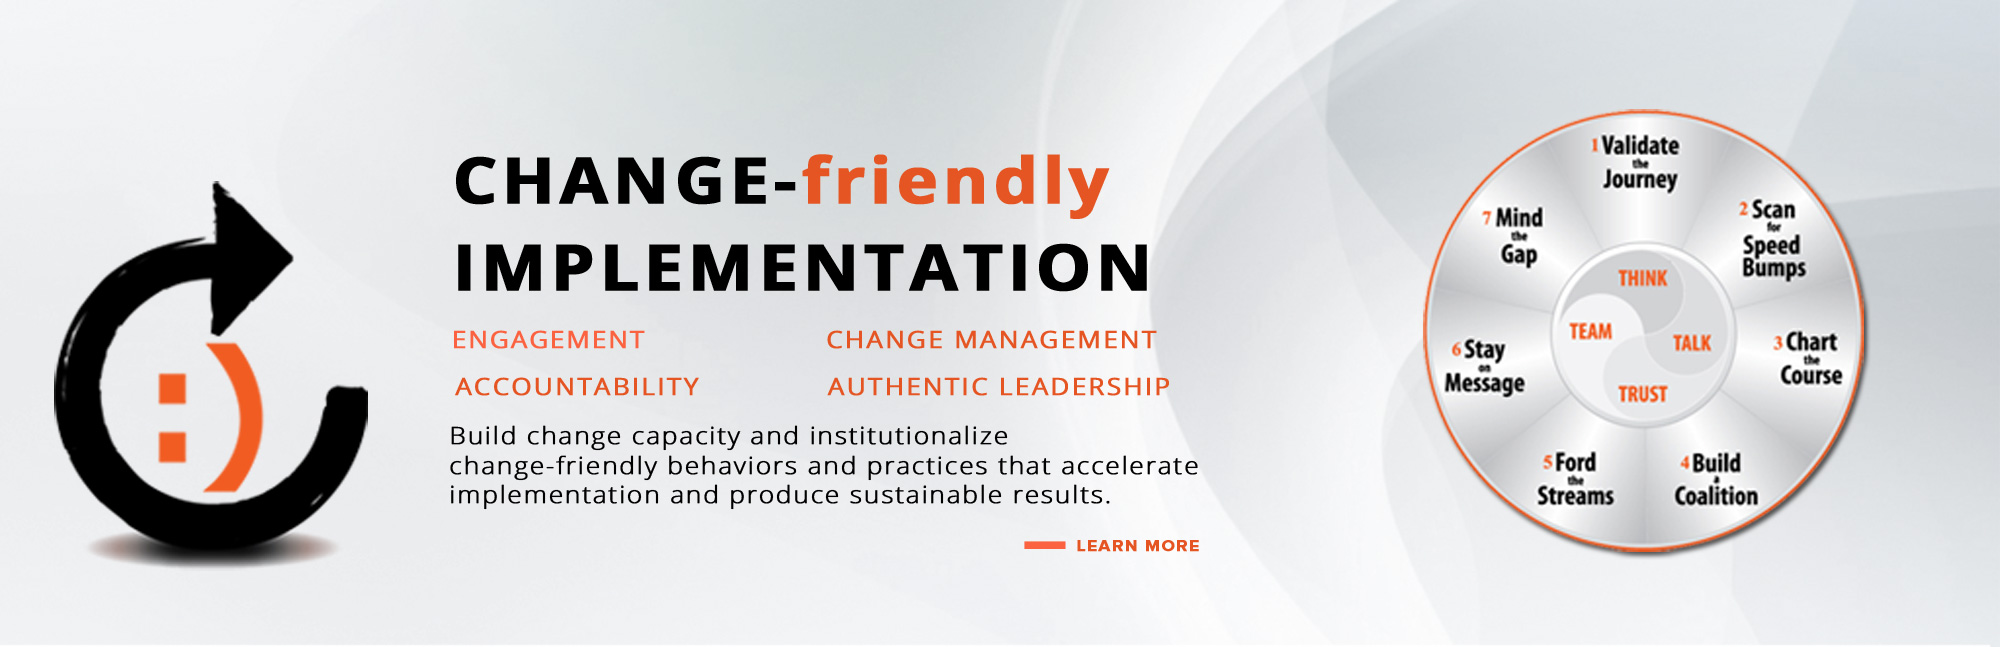 Change Friendly Impementation